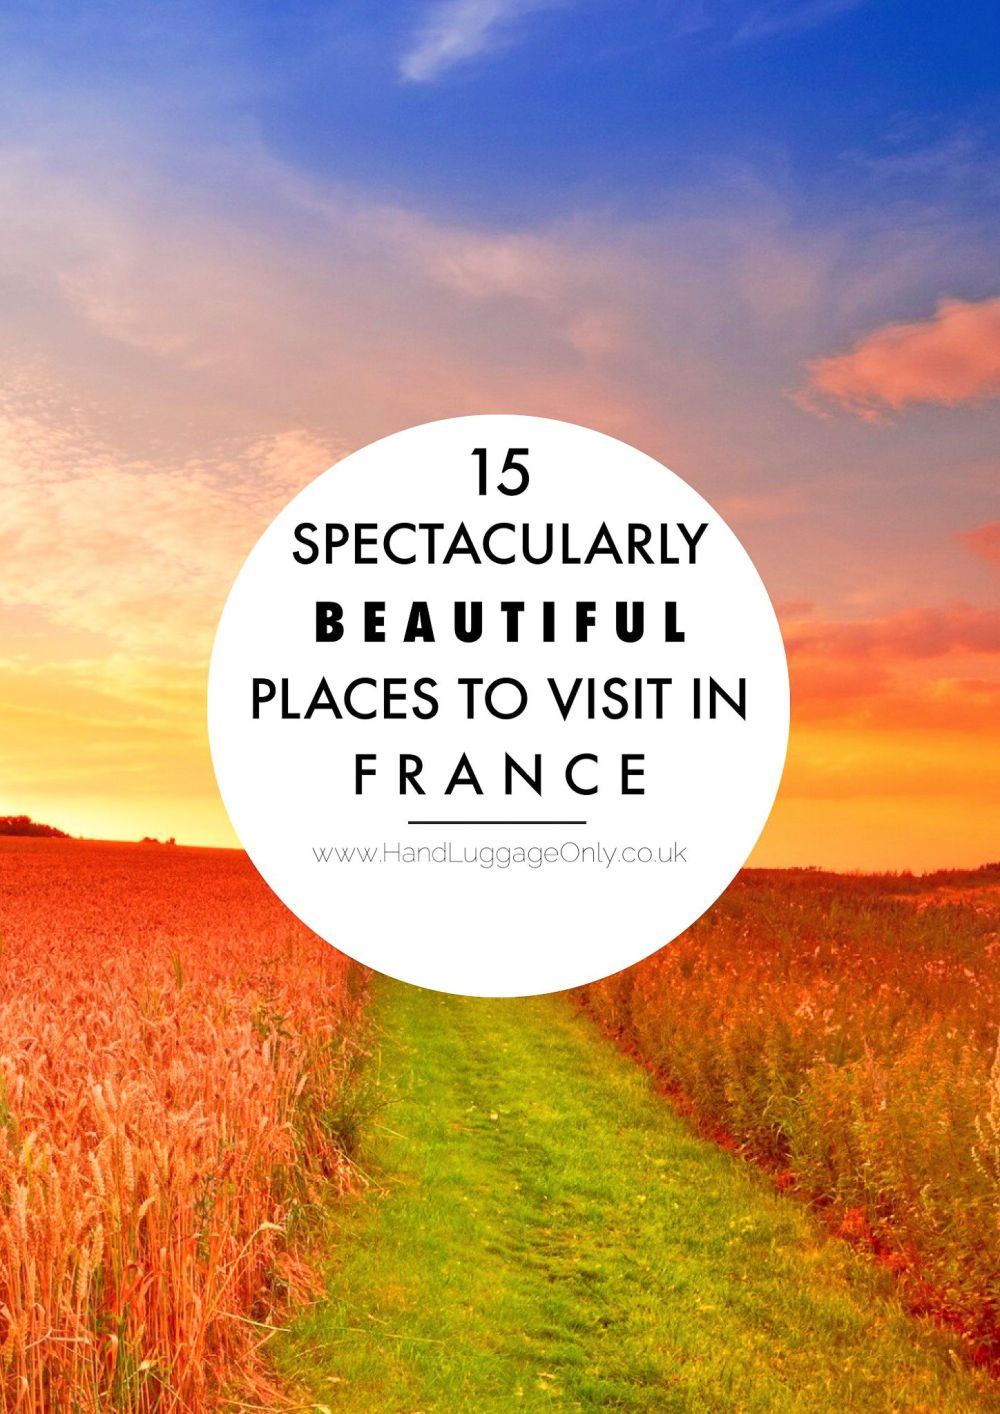 15 Spectacularly Beautiful Places You Must Visit In France!